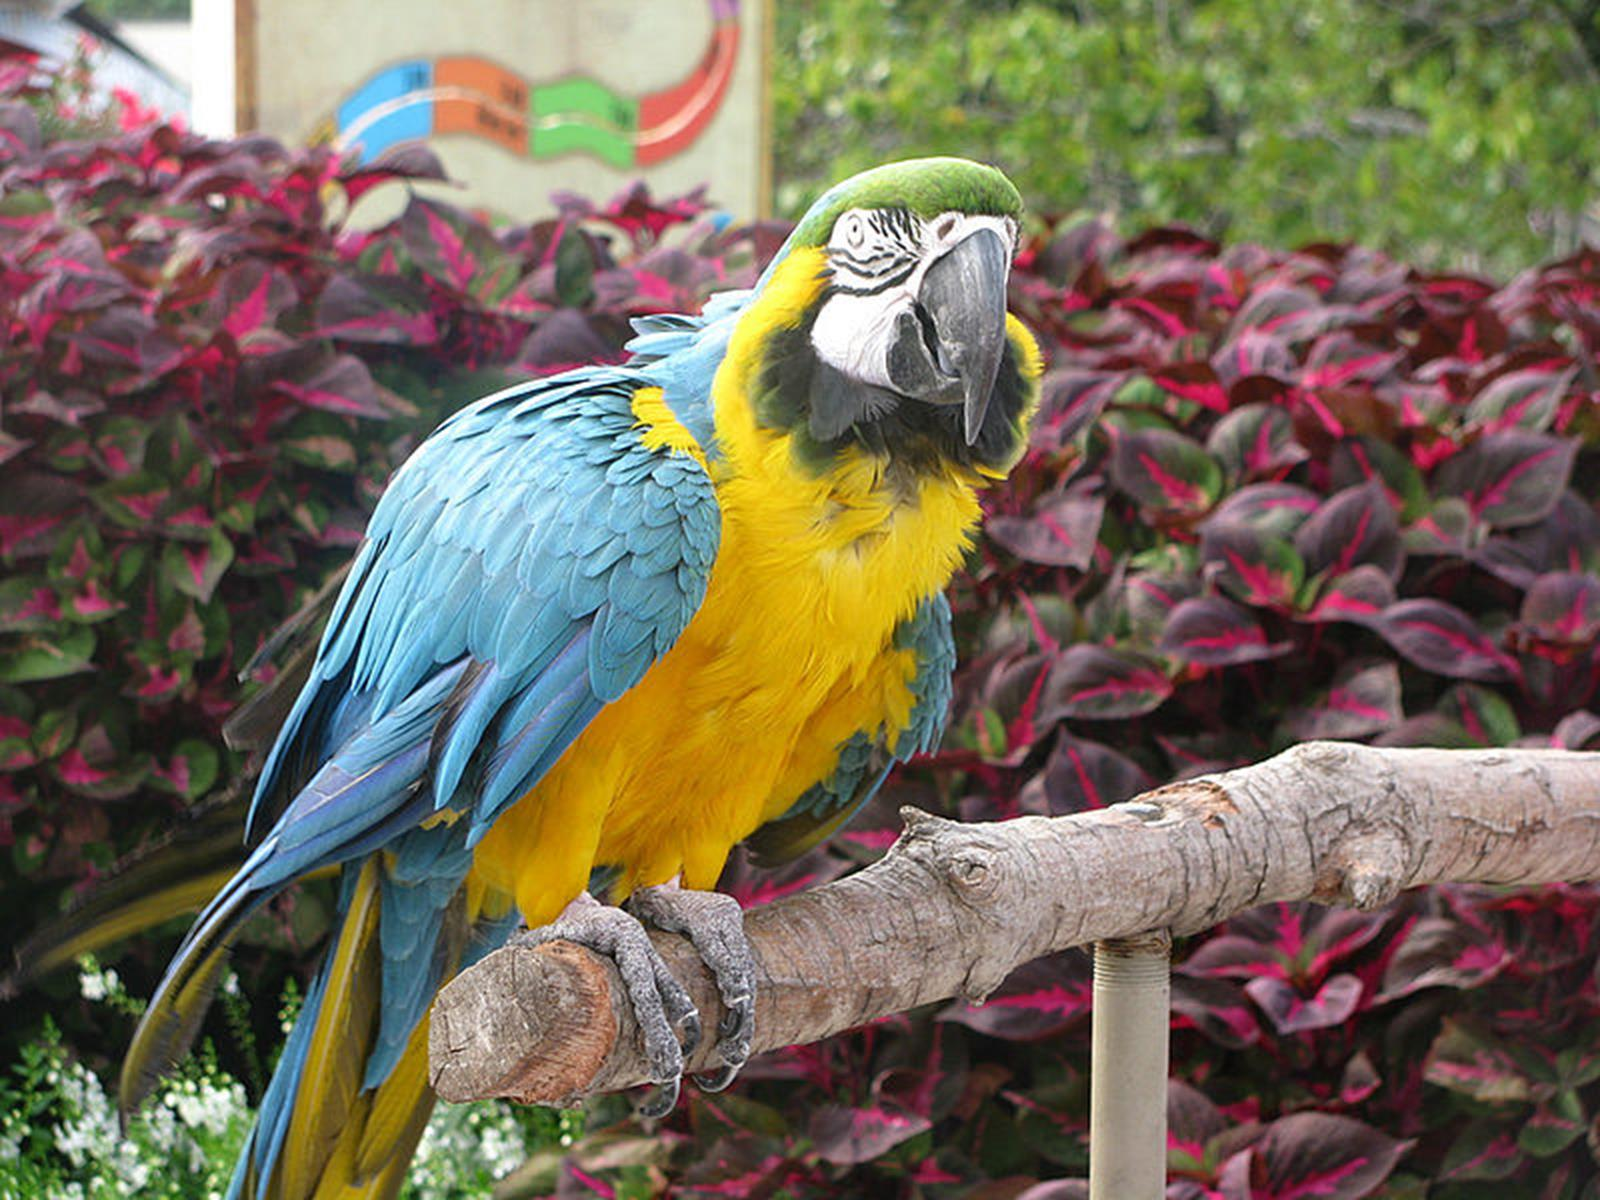 Blue and Yellow Macaw at Tulsa Zoo. Credit: Angela Severn